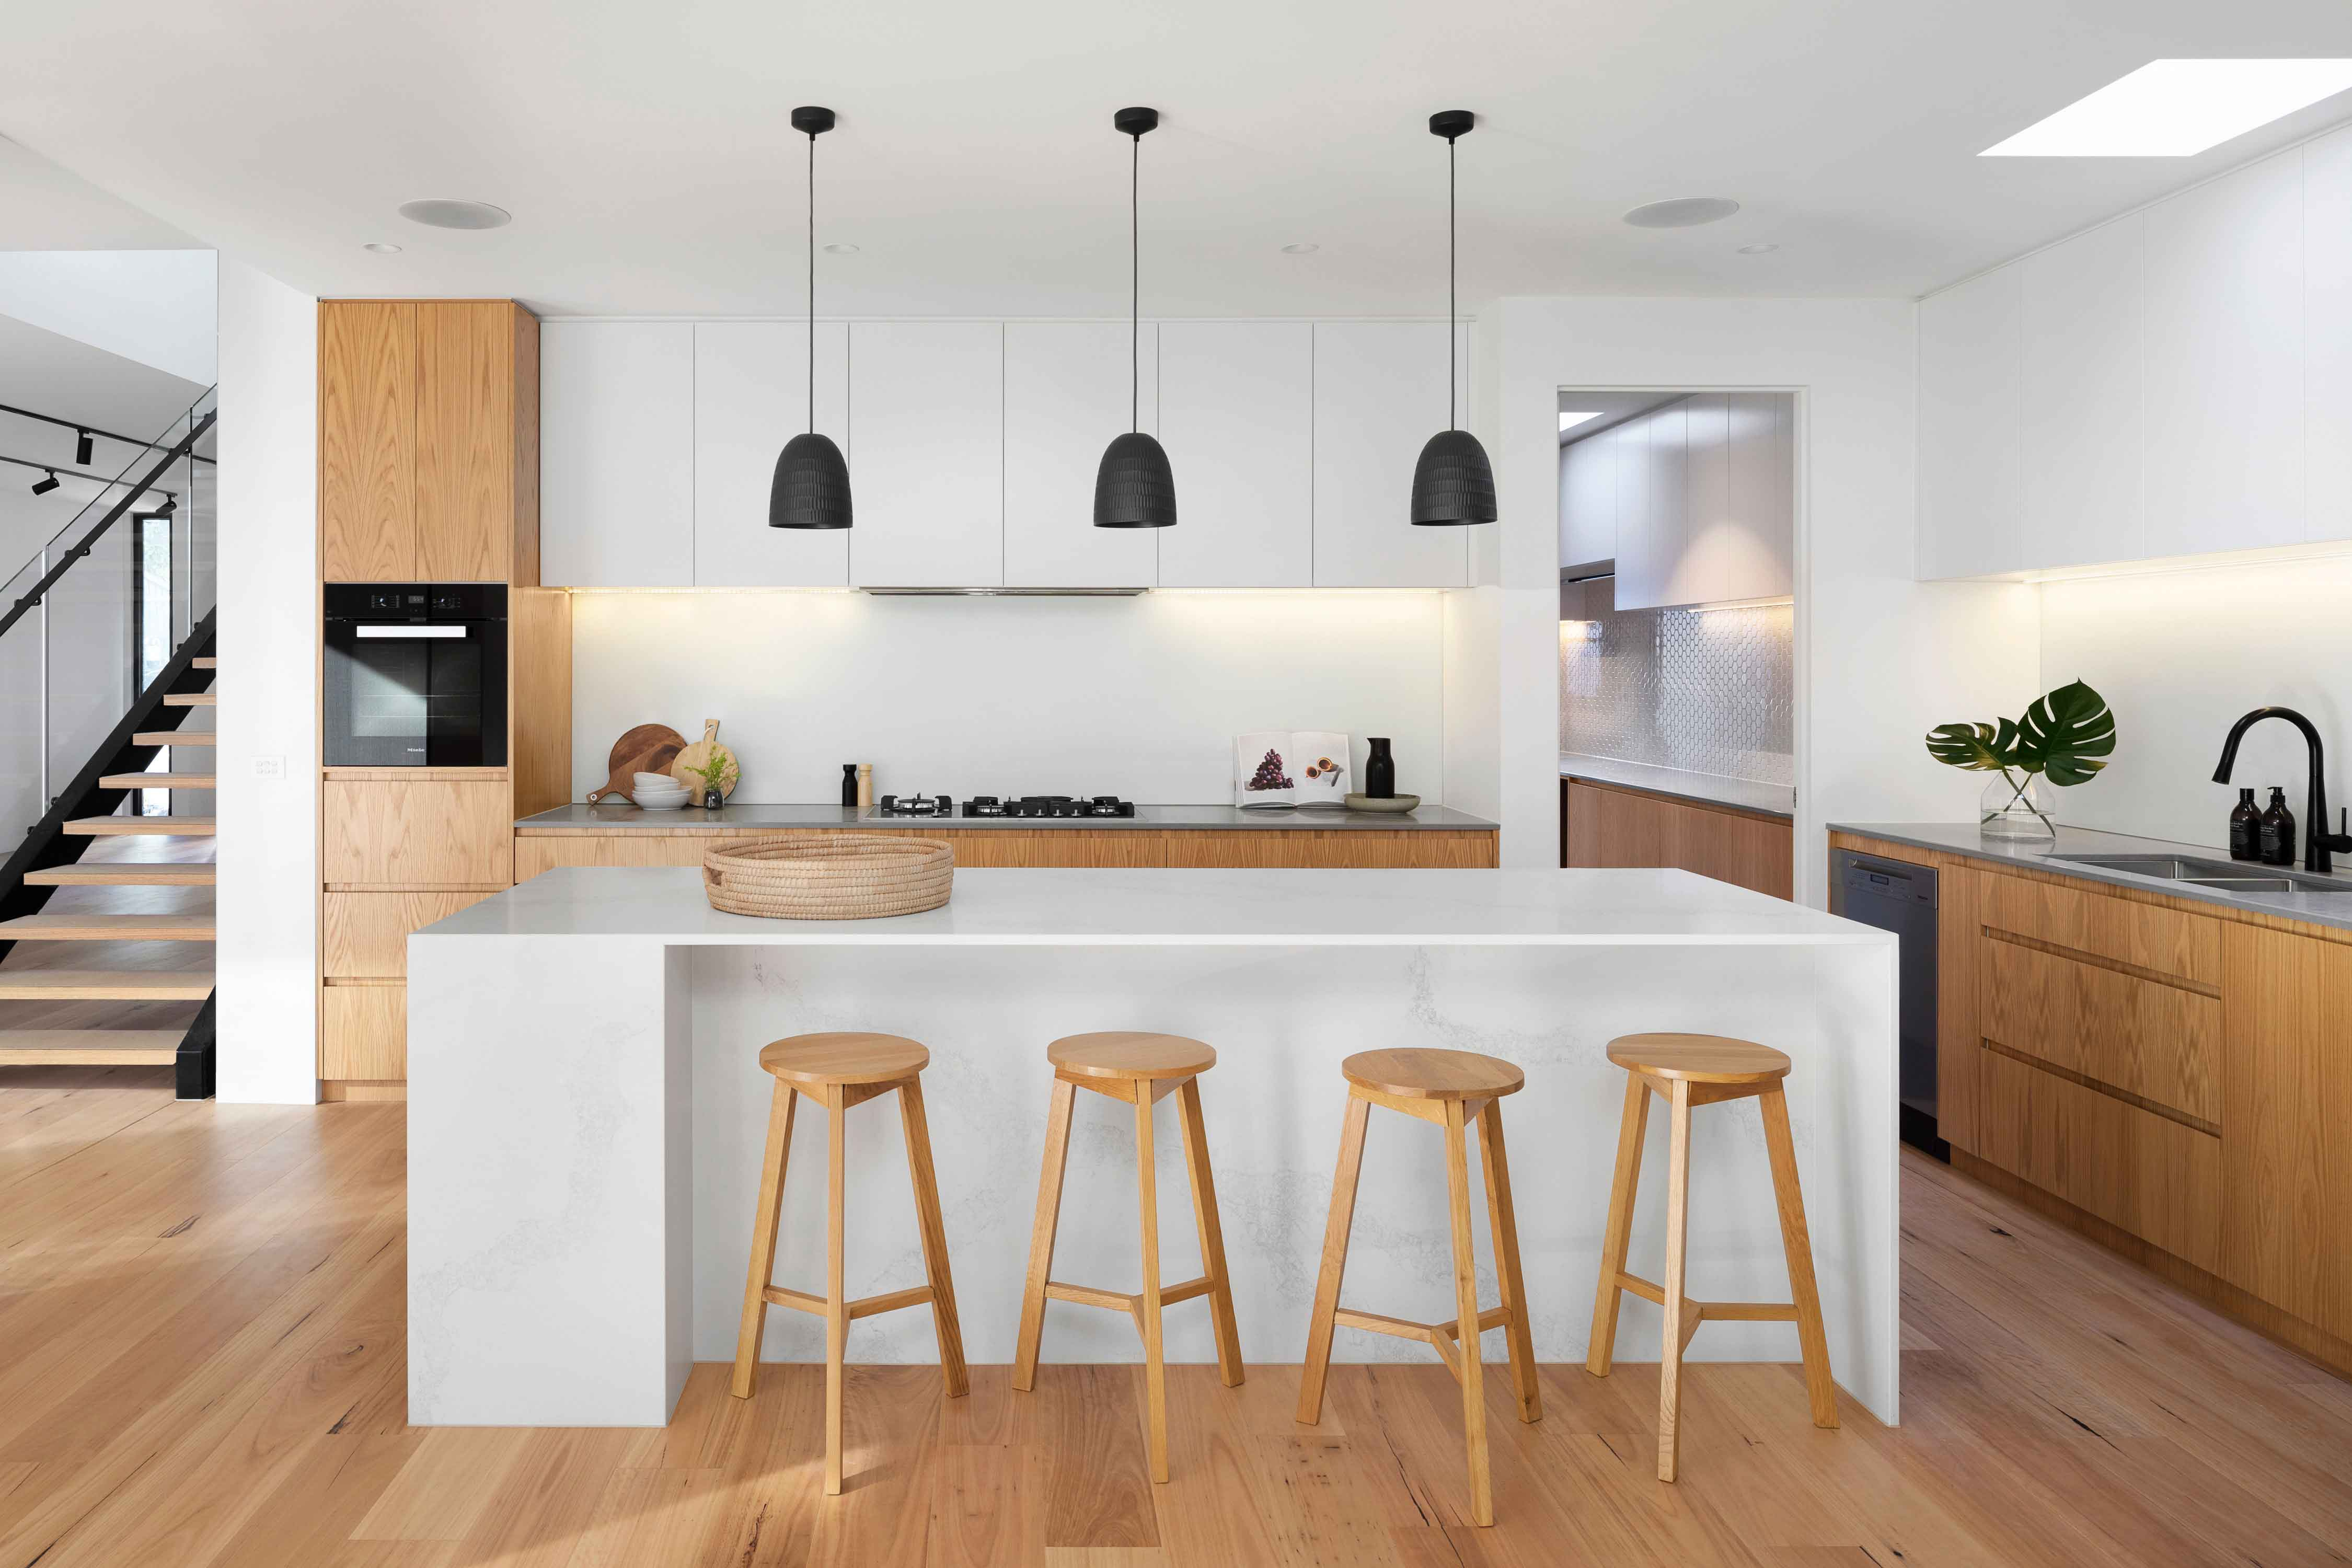 Are German kitchens the Best?